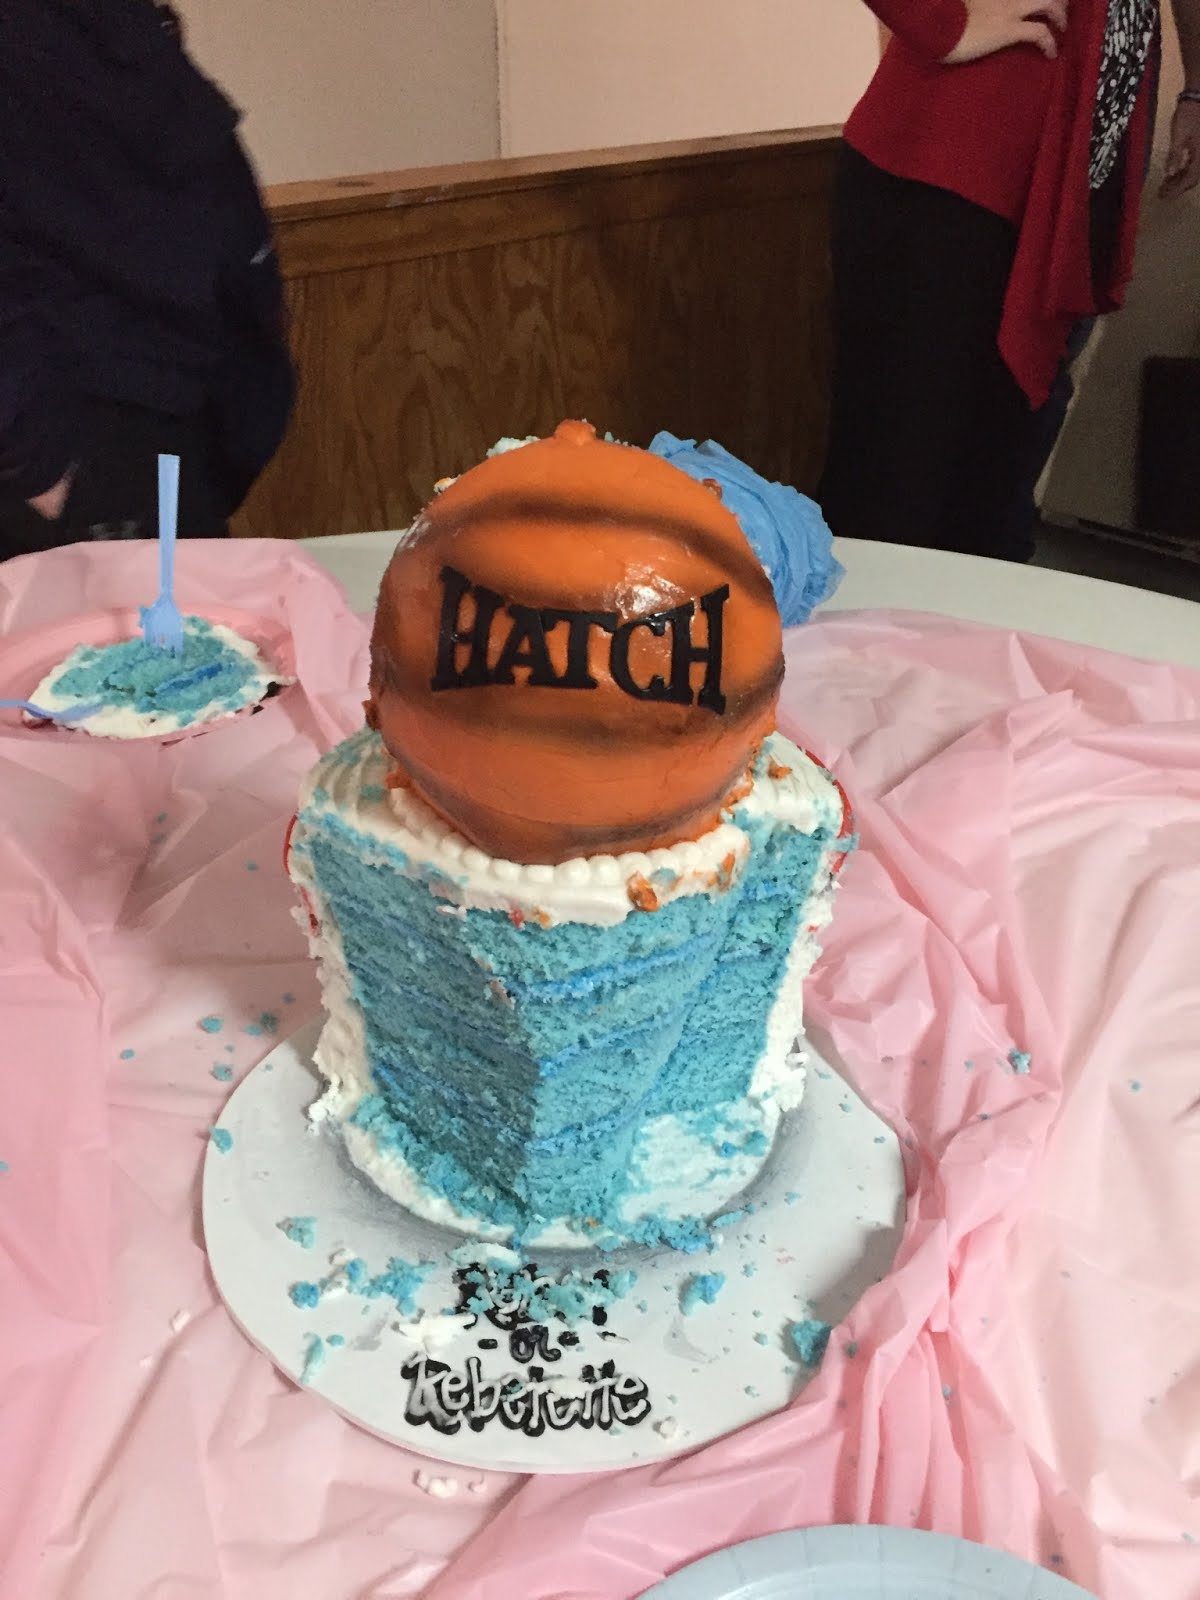 Cake from reveal party!